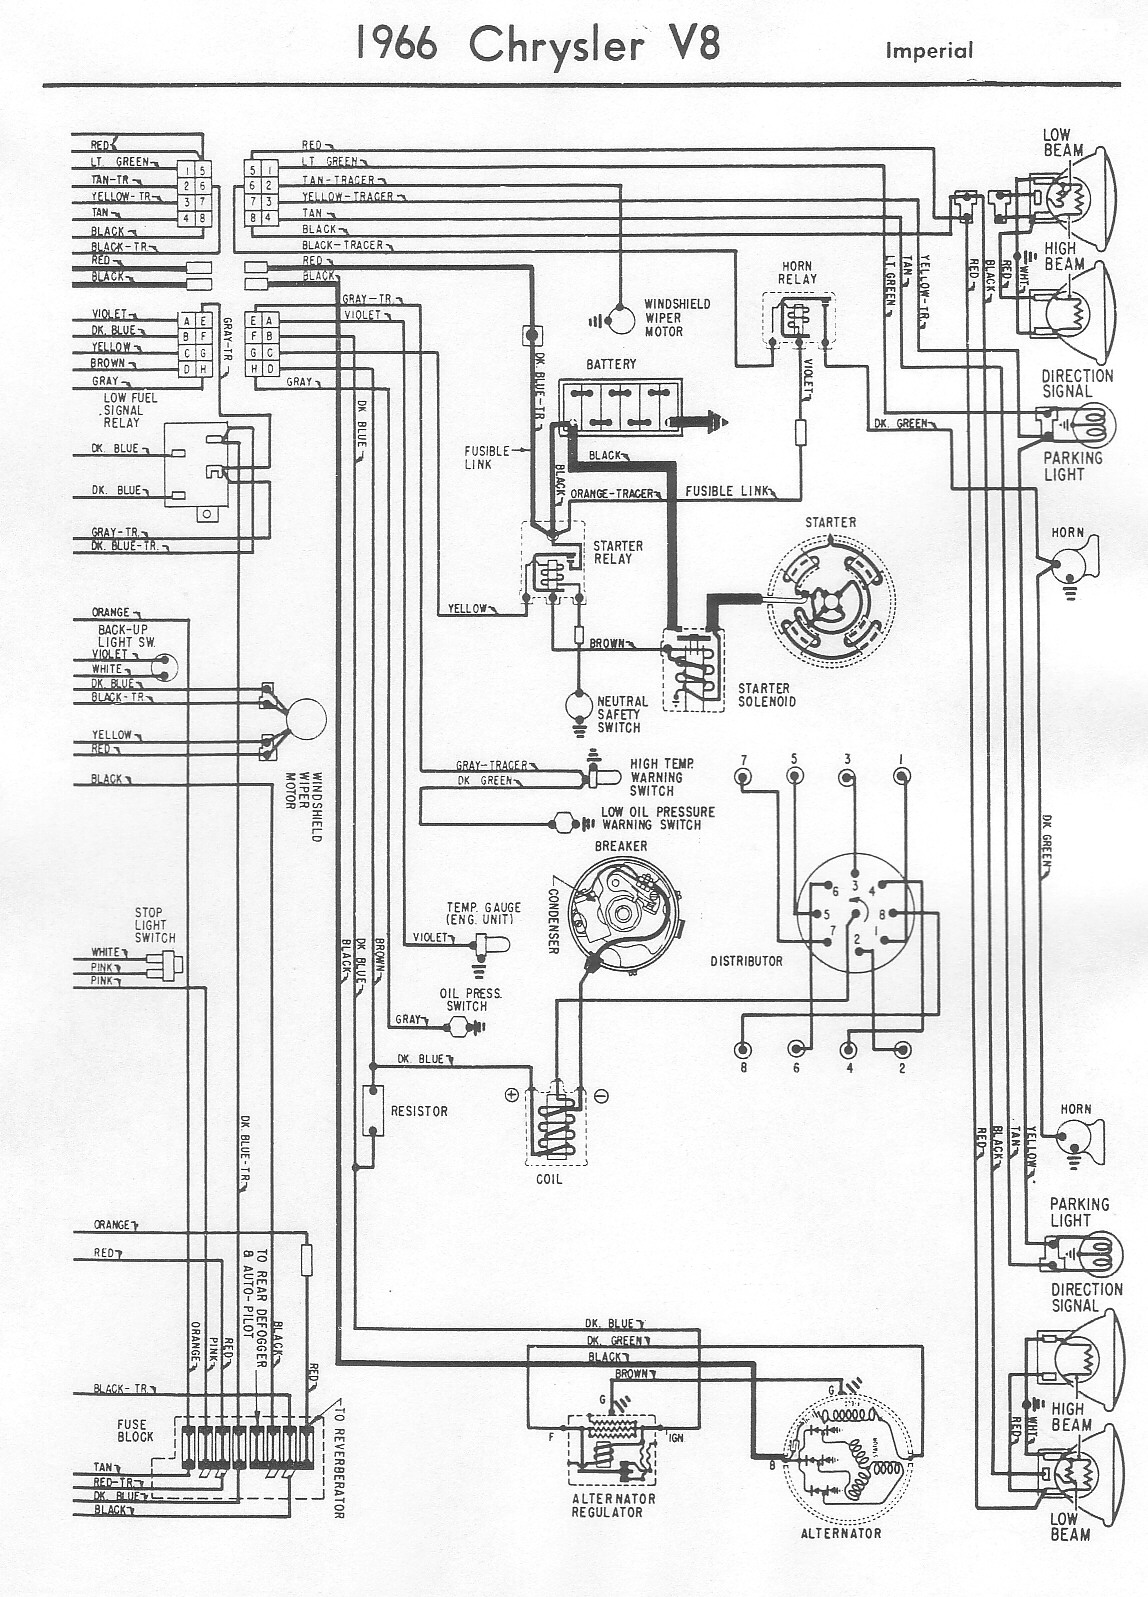 2005 Bluebird Vision Wiring Schematic  Nissan Car Manuals